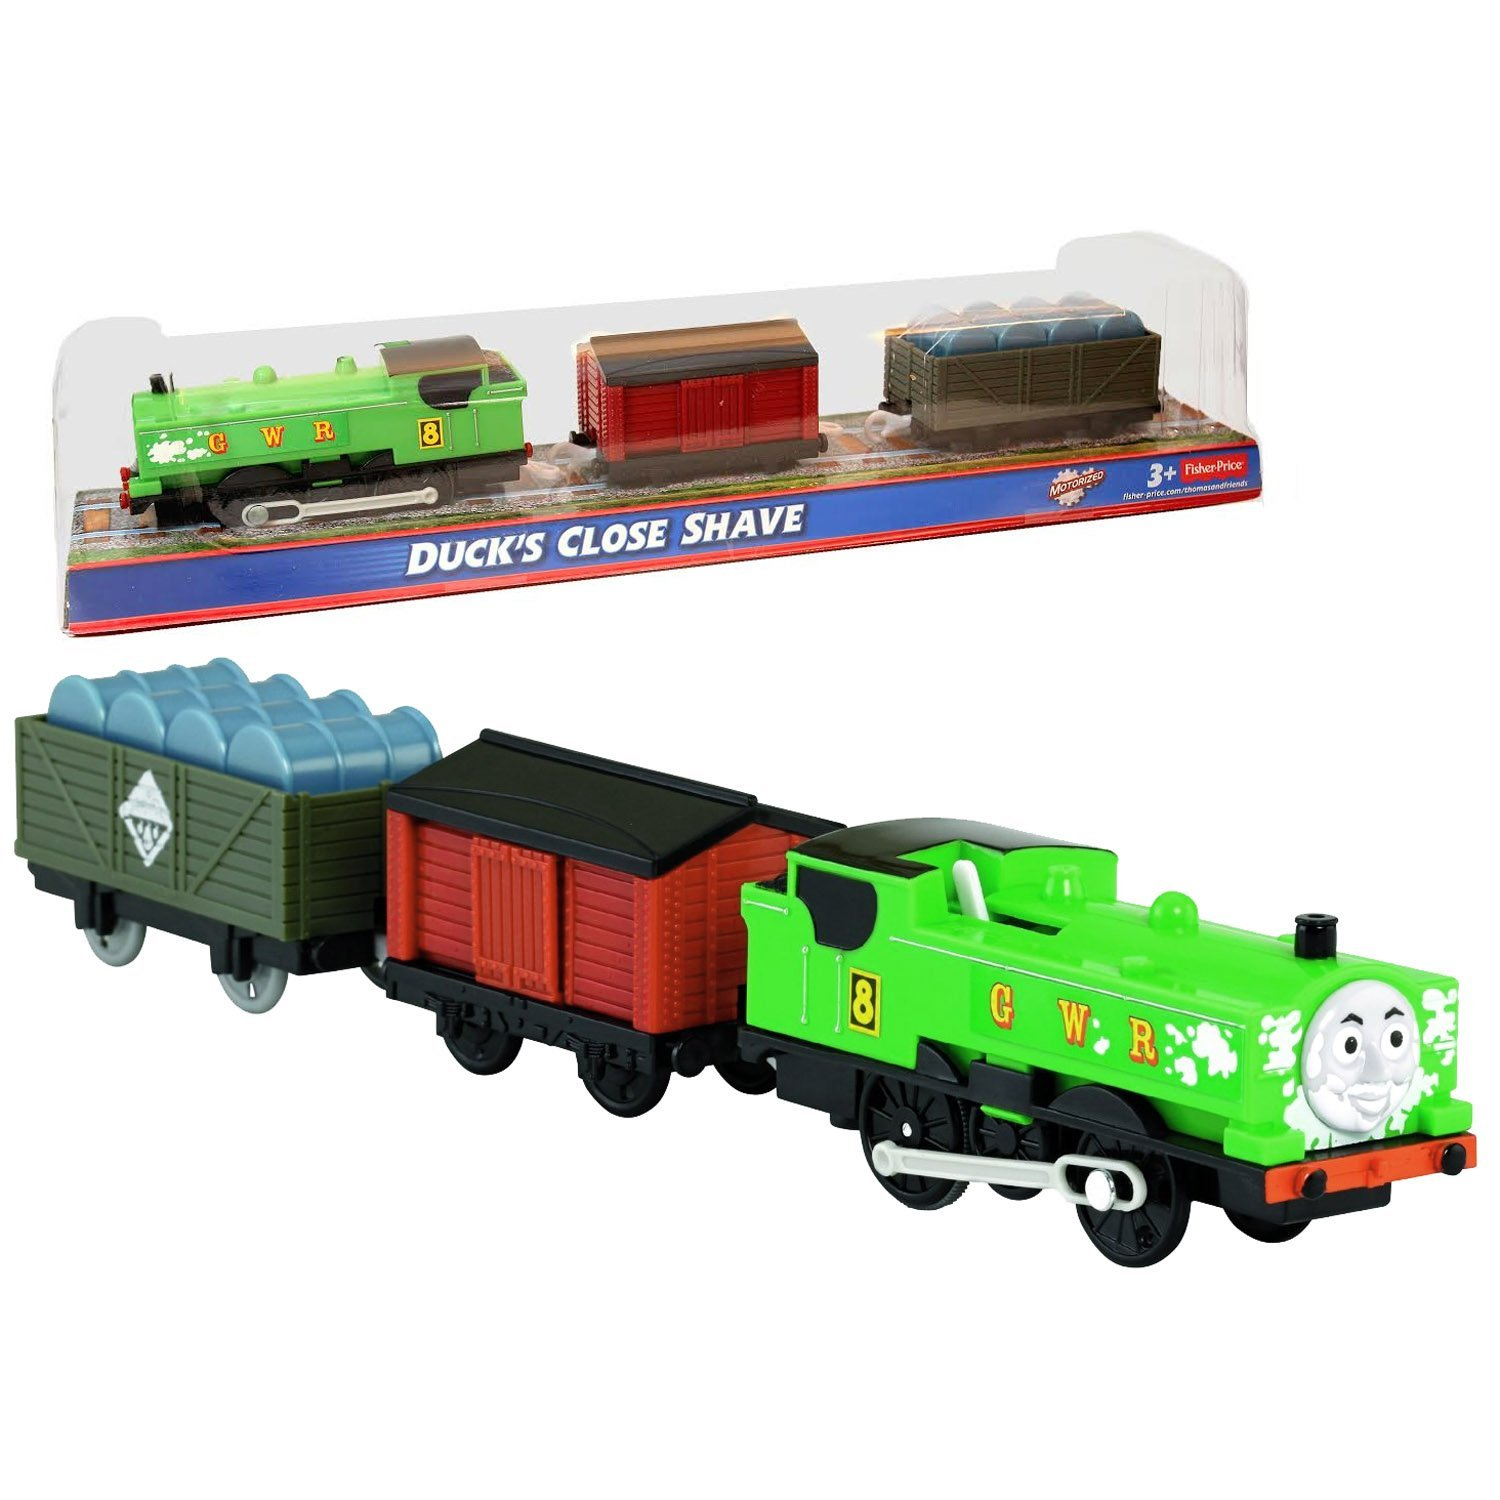 "Fisher Price Year 2013 Thomas and Friends Greatest Moments Series Trackmaster Motorized Railway Battery Powered Tank Engine 3 Pack Train Set - DUCK'S CLOSE SHAVE with Duck Motorized Engine, Red Caboose and Freight Car Loaded with ""Barrels"""